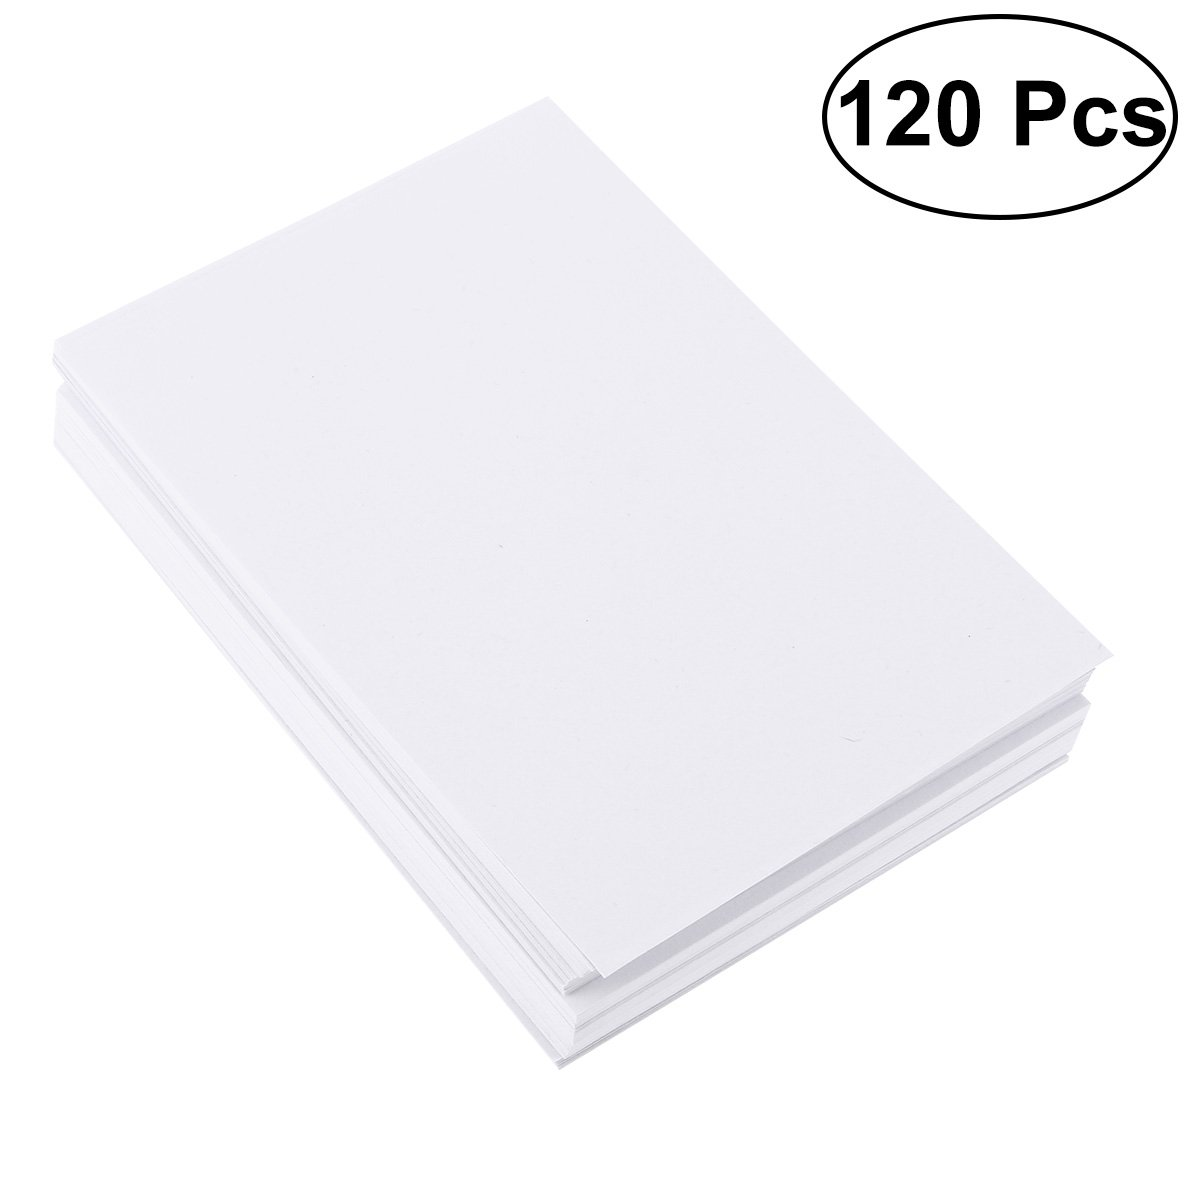 Healifty 120 Sheets Cotton Watercolor Paper Bulk Cold Press Paper Drawing Paper for Watercolorist Students Beginning Artists